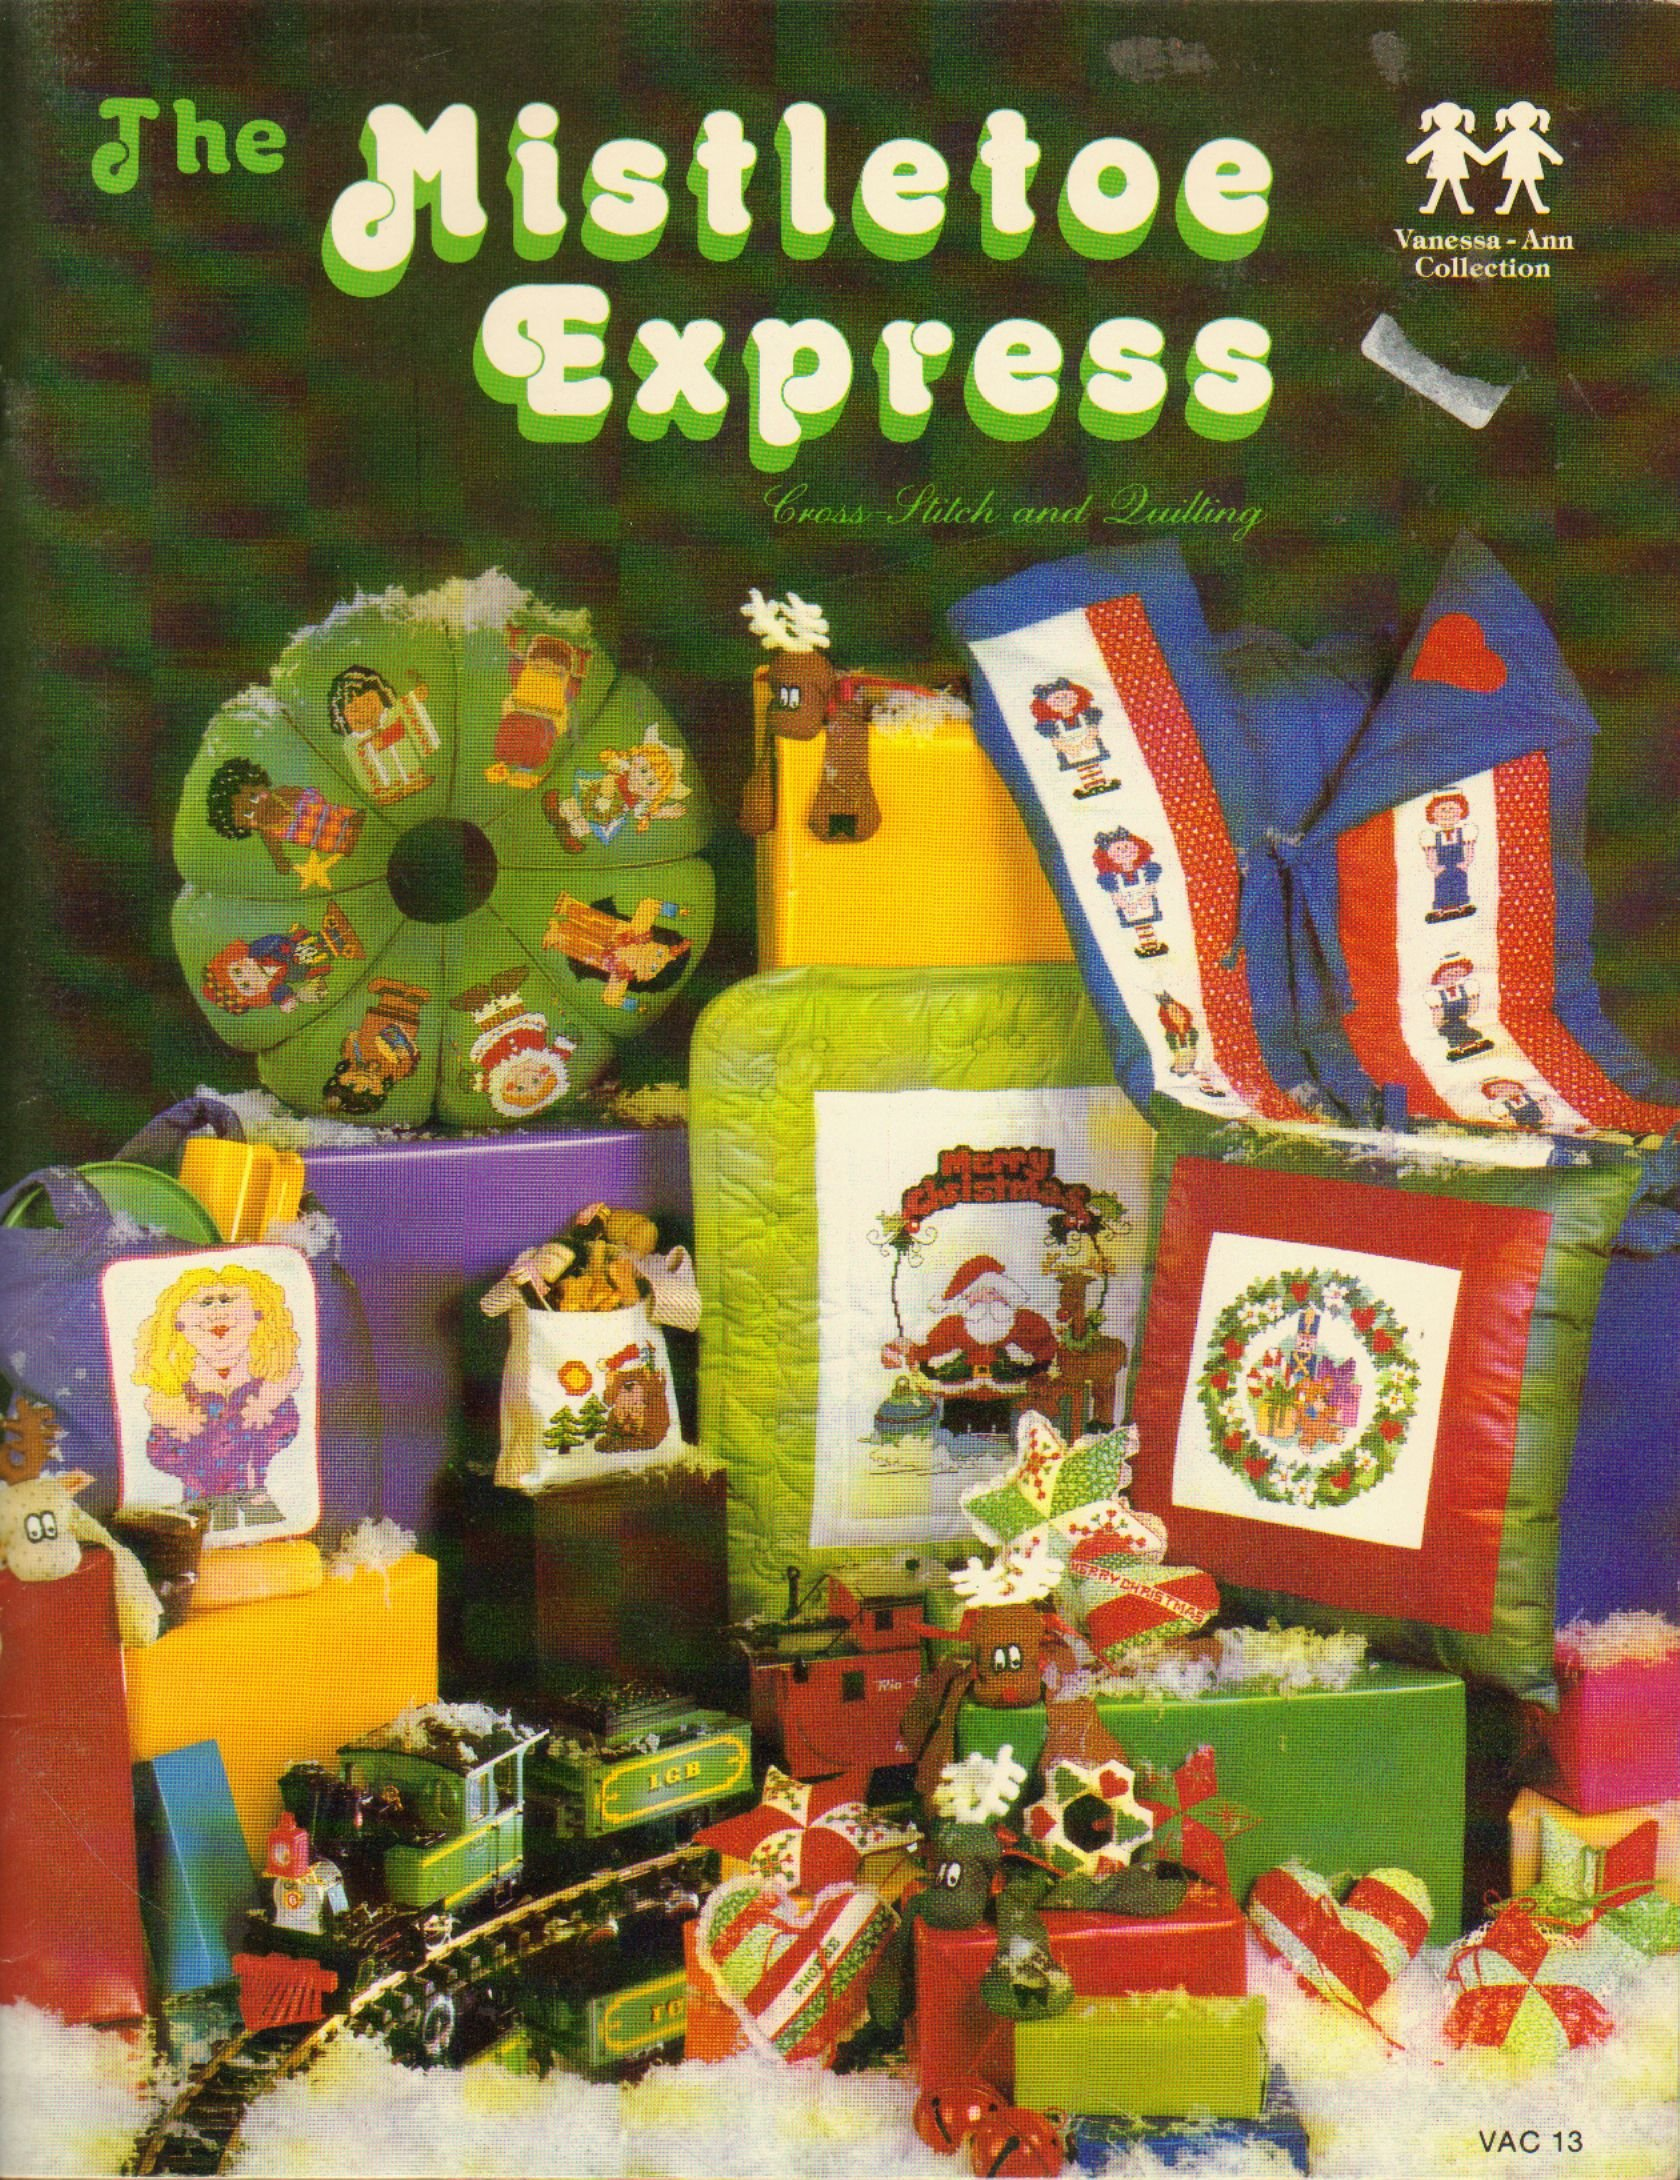 The Mistletoe Express